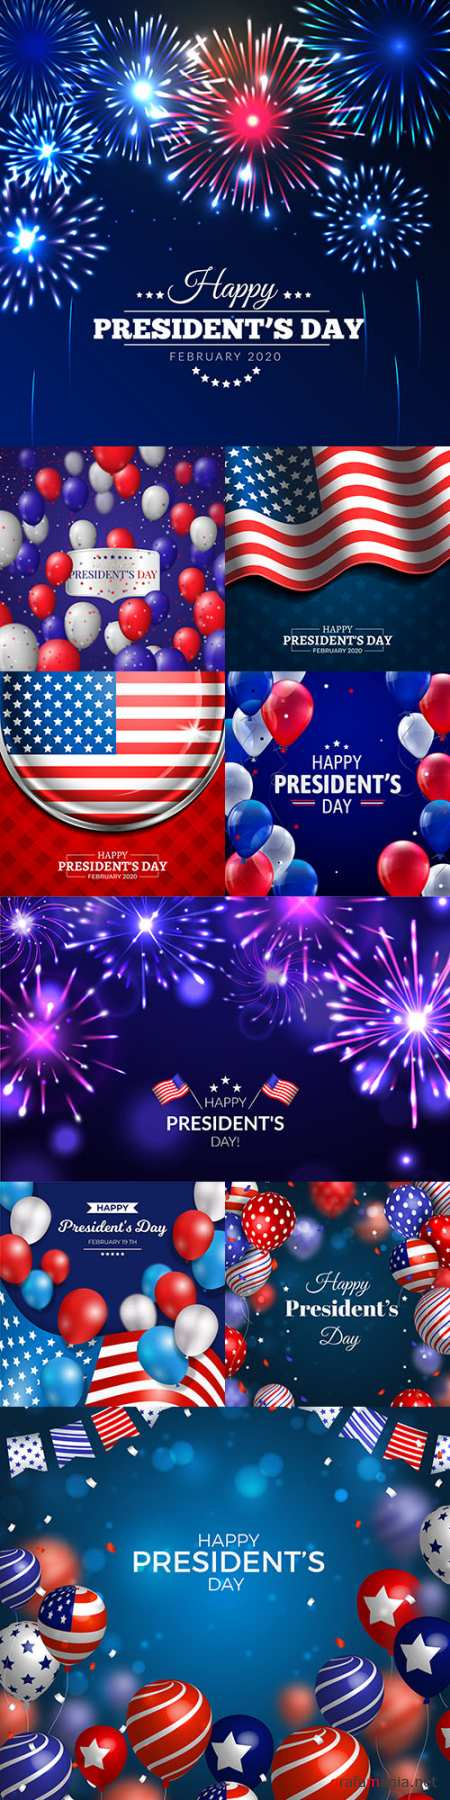 Happy President's Day decorative design illustrations 7